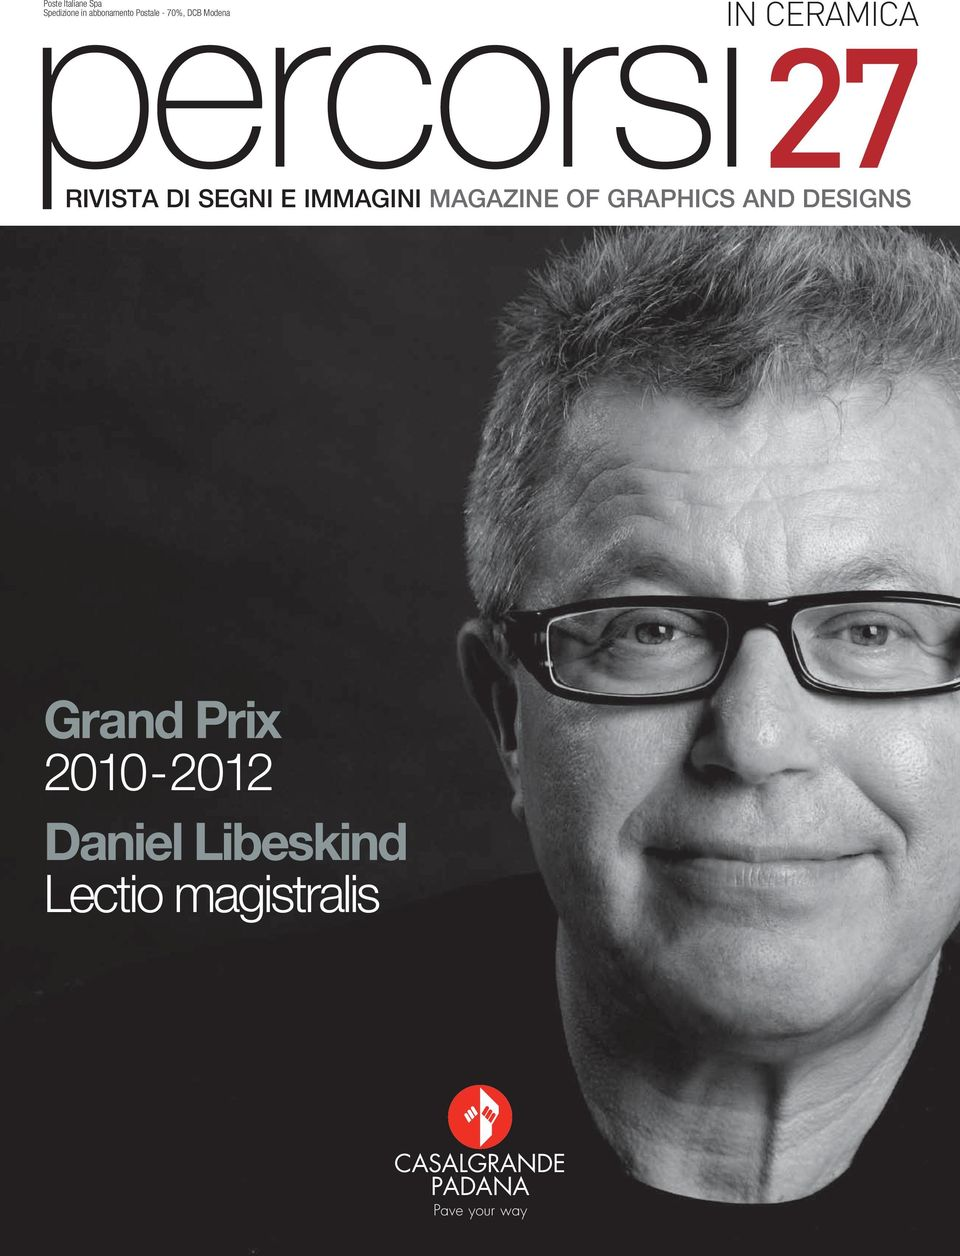 immagini magazine of graphics and designs Grand Prix